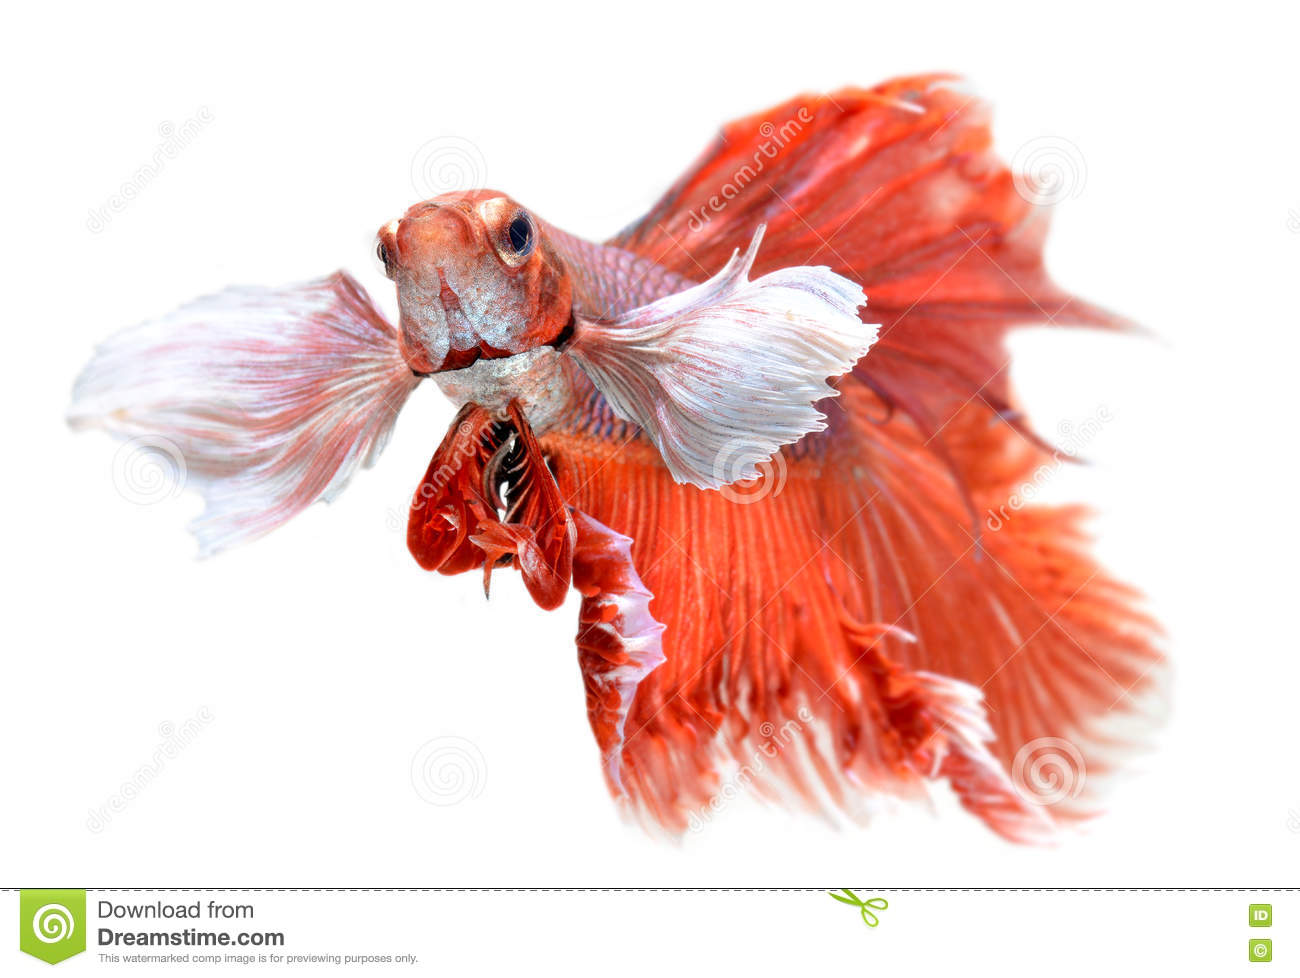 Betta Fish In Freedom Action Stock Image - Image of color, butterfly ...